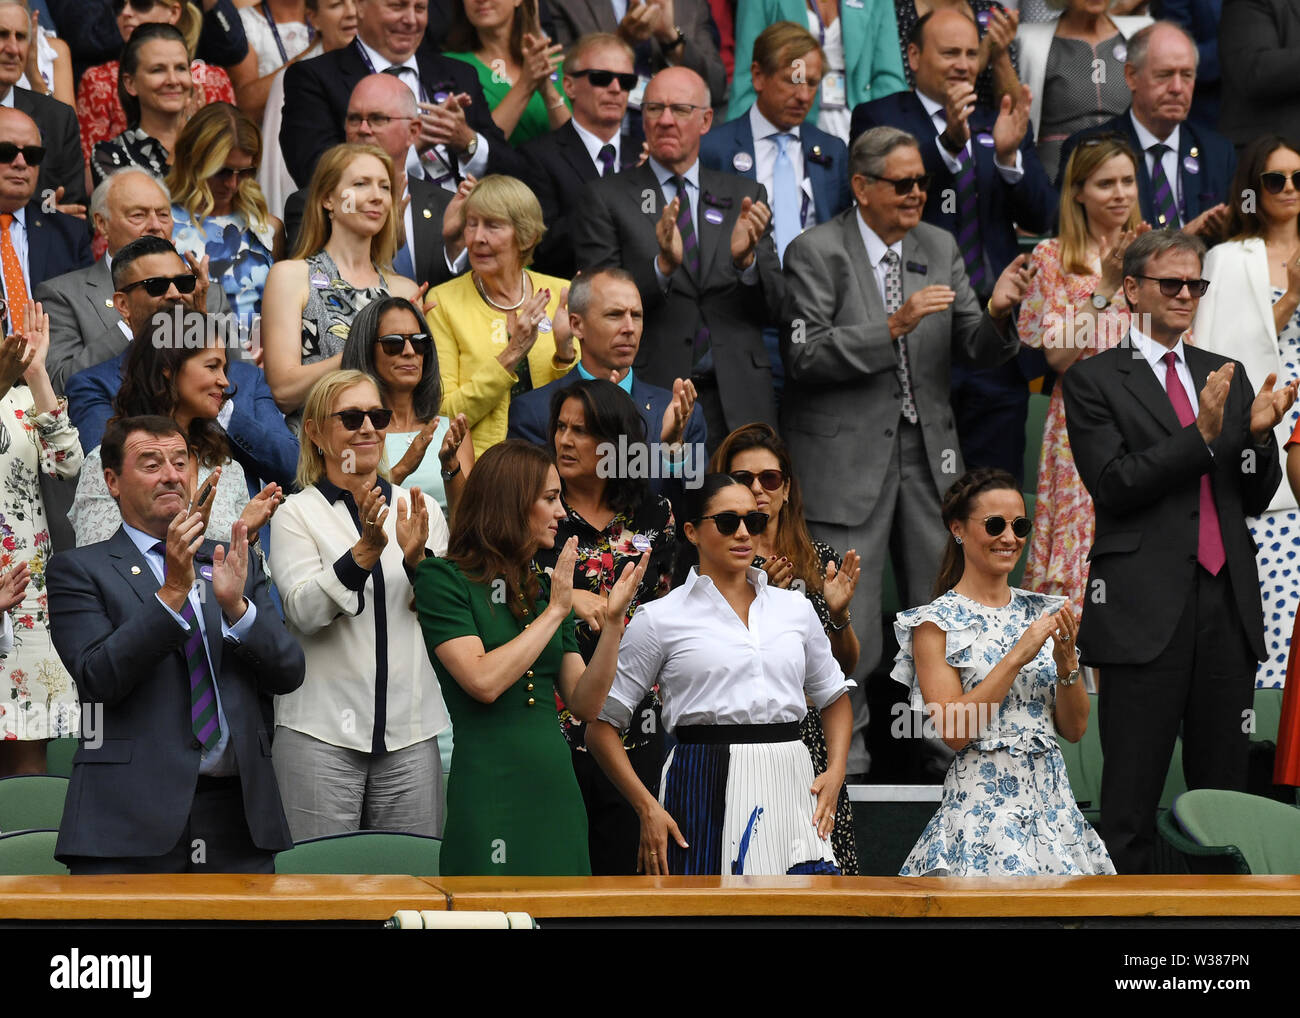 London England  13 July 2019 The Championships Wimbledon 2019 13072019  Everyone in the Royal Box, including Katherine Duchess of Cambridge and Pippa Matthews applaud from the  Royal Box after Simona Halep wins Ladies Singles Final but  Meghan Duchess of Sussex does not join in. Photo Roger Parker International Sports Fotos Ltd/Alamy Live News - Stock Image